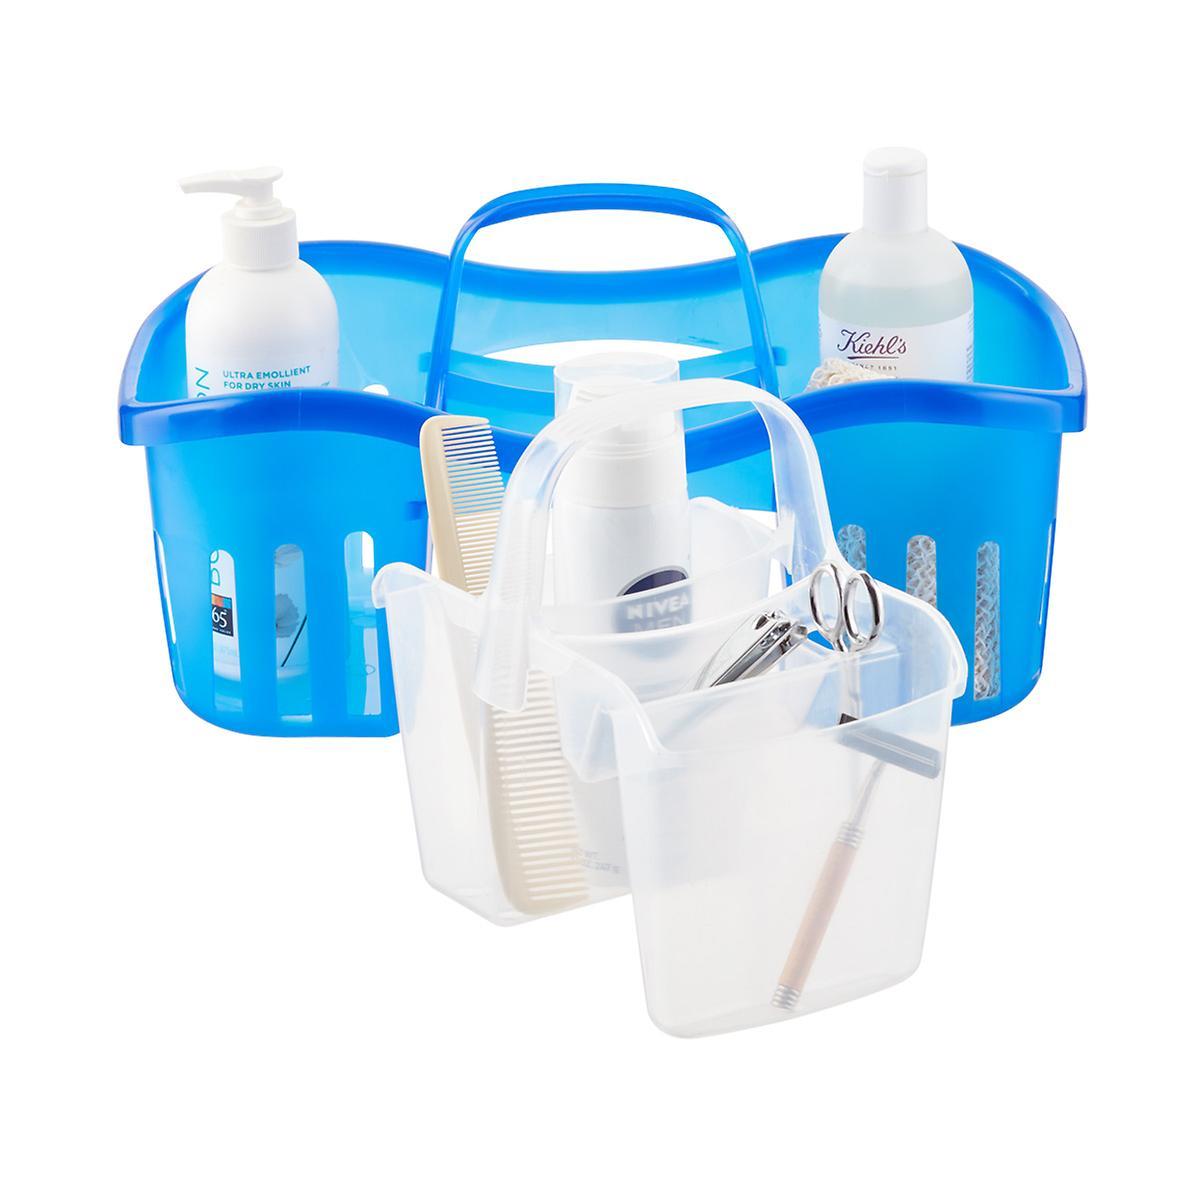 shower caddies shower shelves shower organizers the container casabella blue 2 in 1 shower caddy